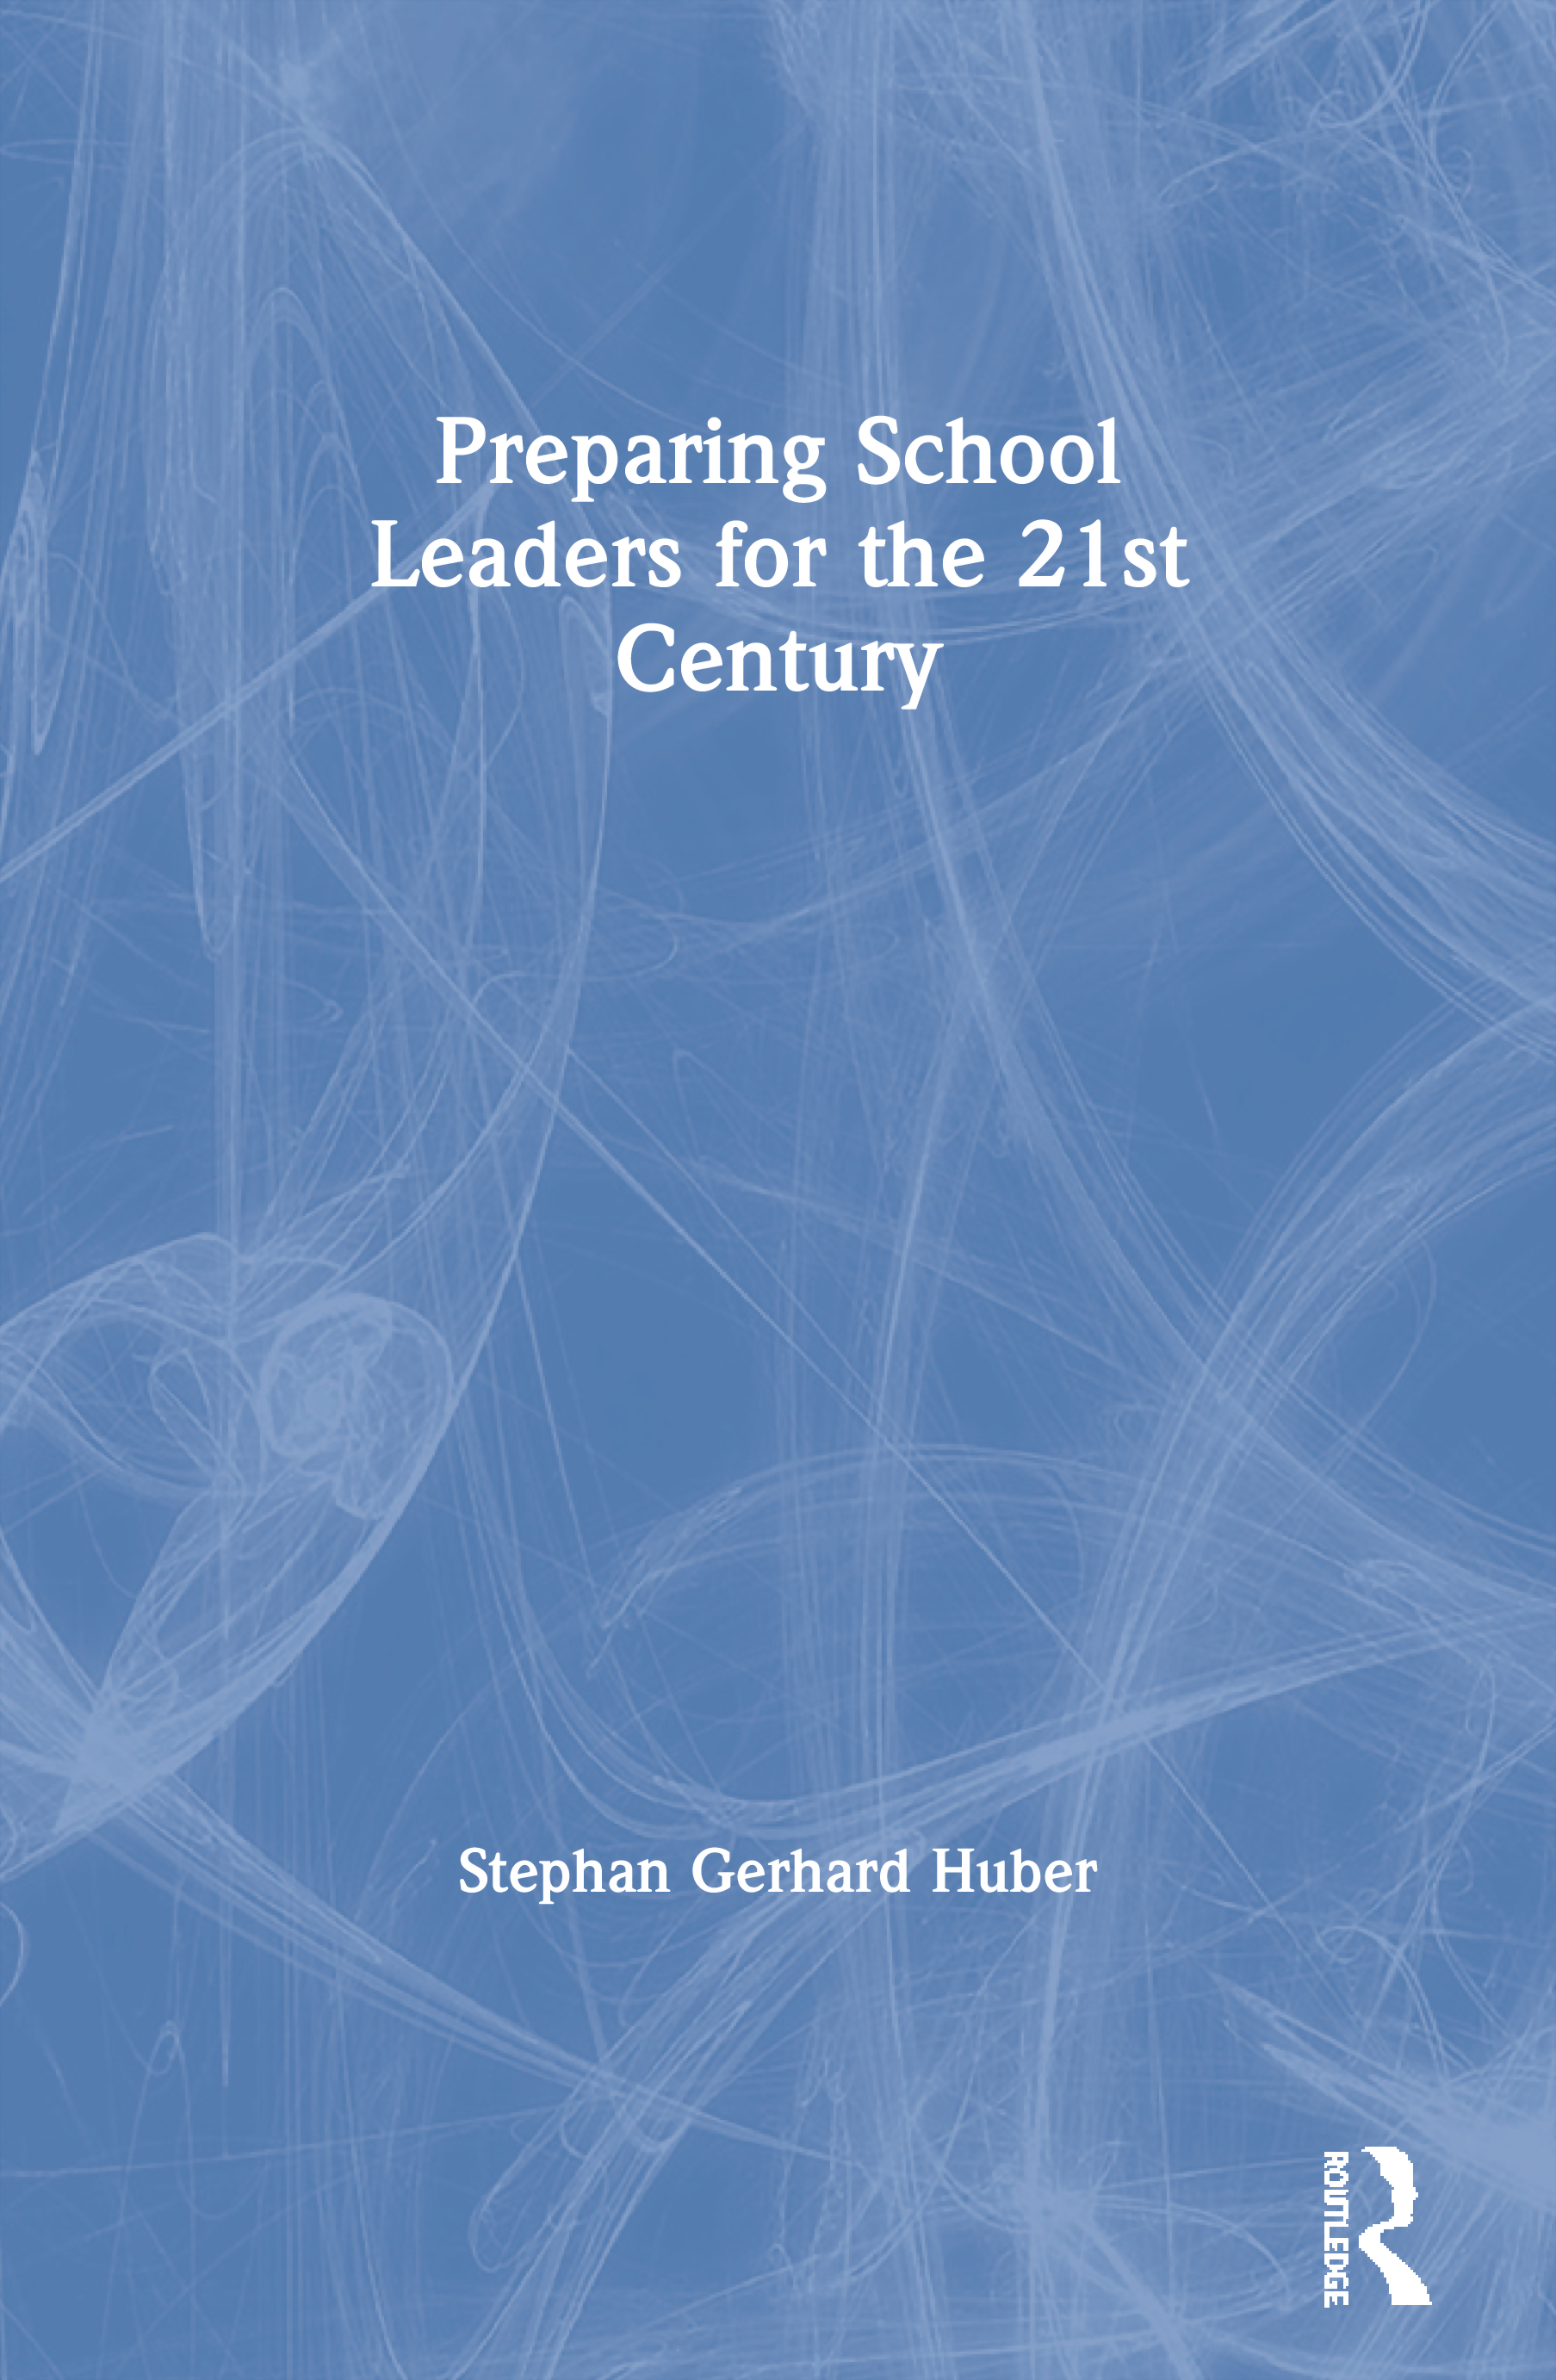 Preparing School Leaders for the 21st Century